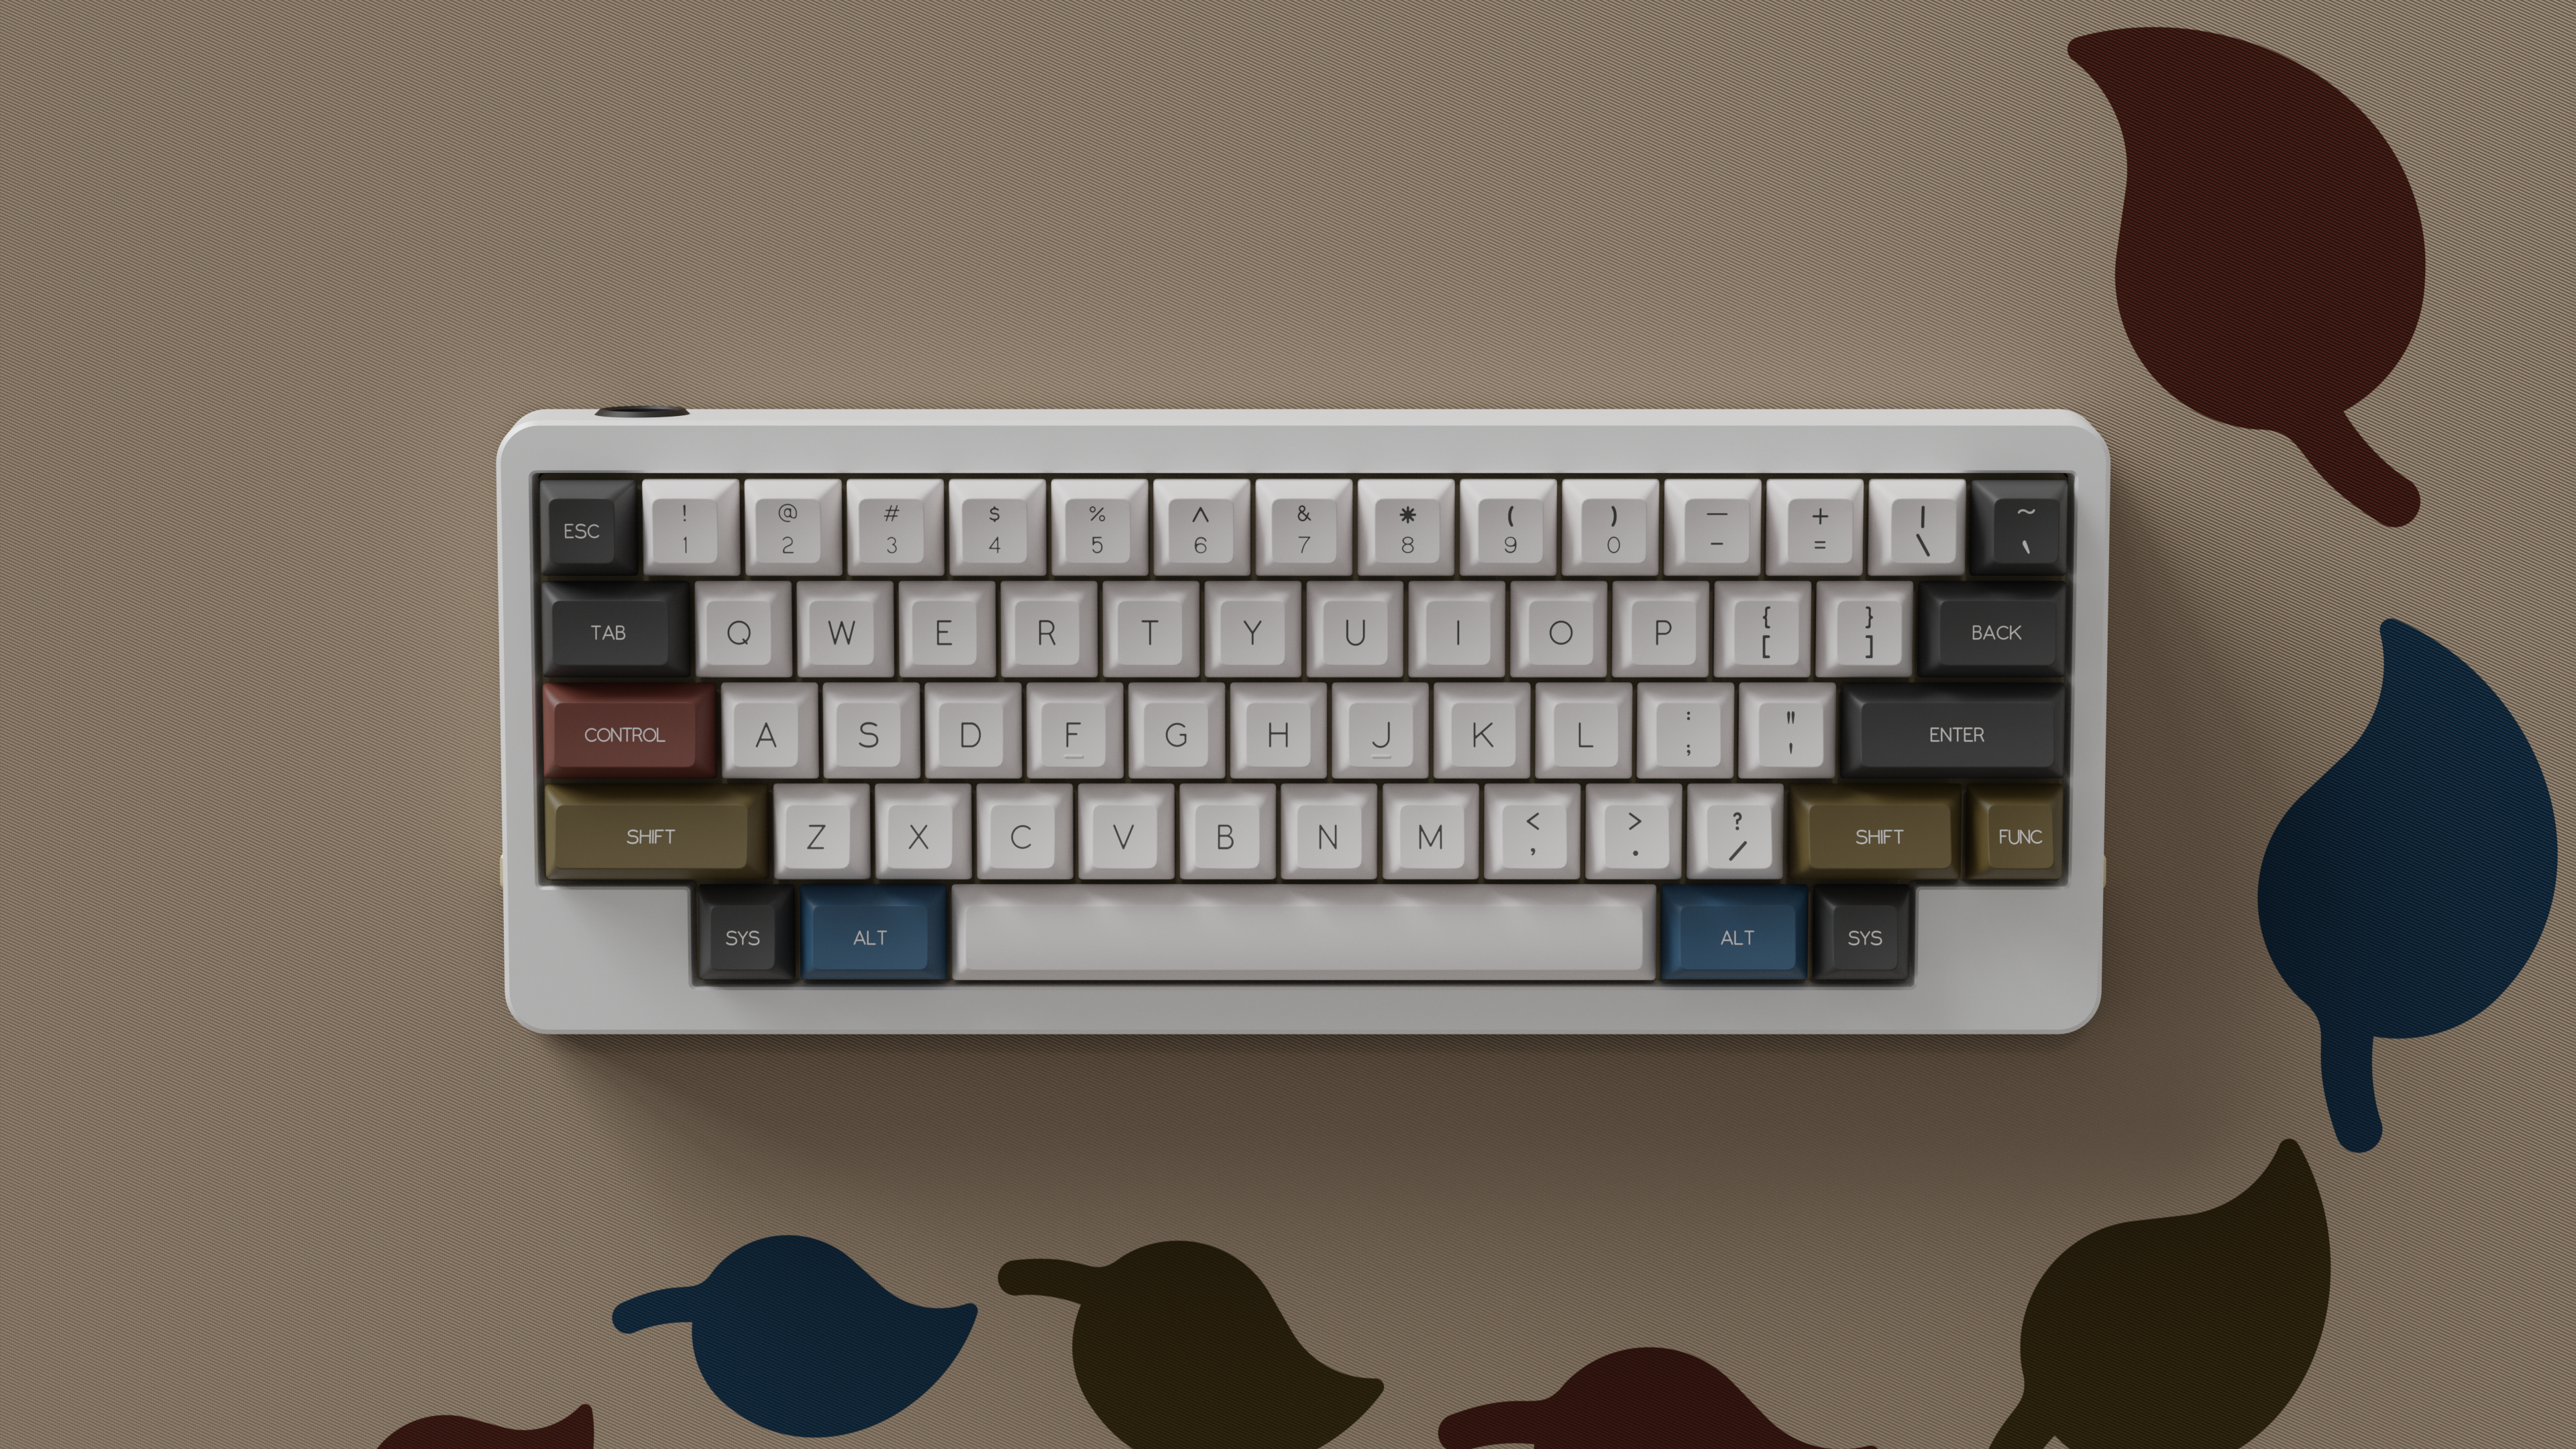 D60 Lite by KbdFans. Render by Bregoli.